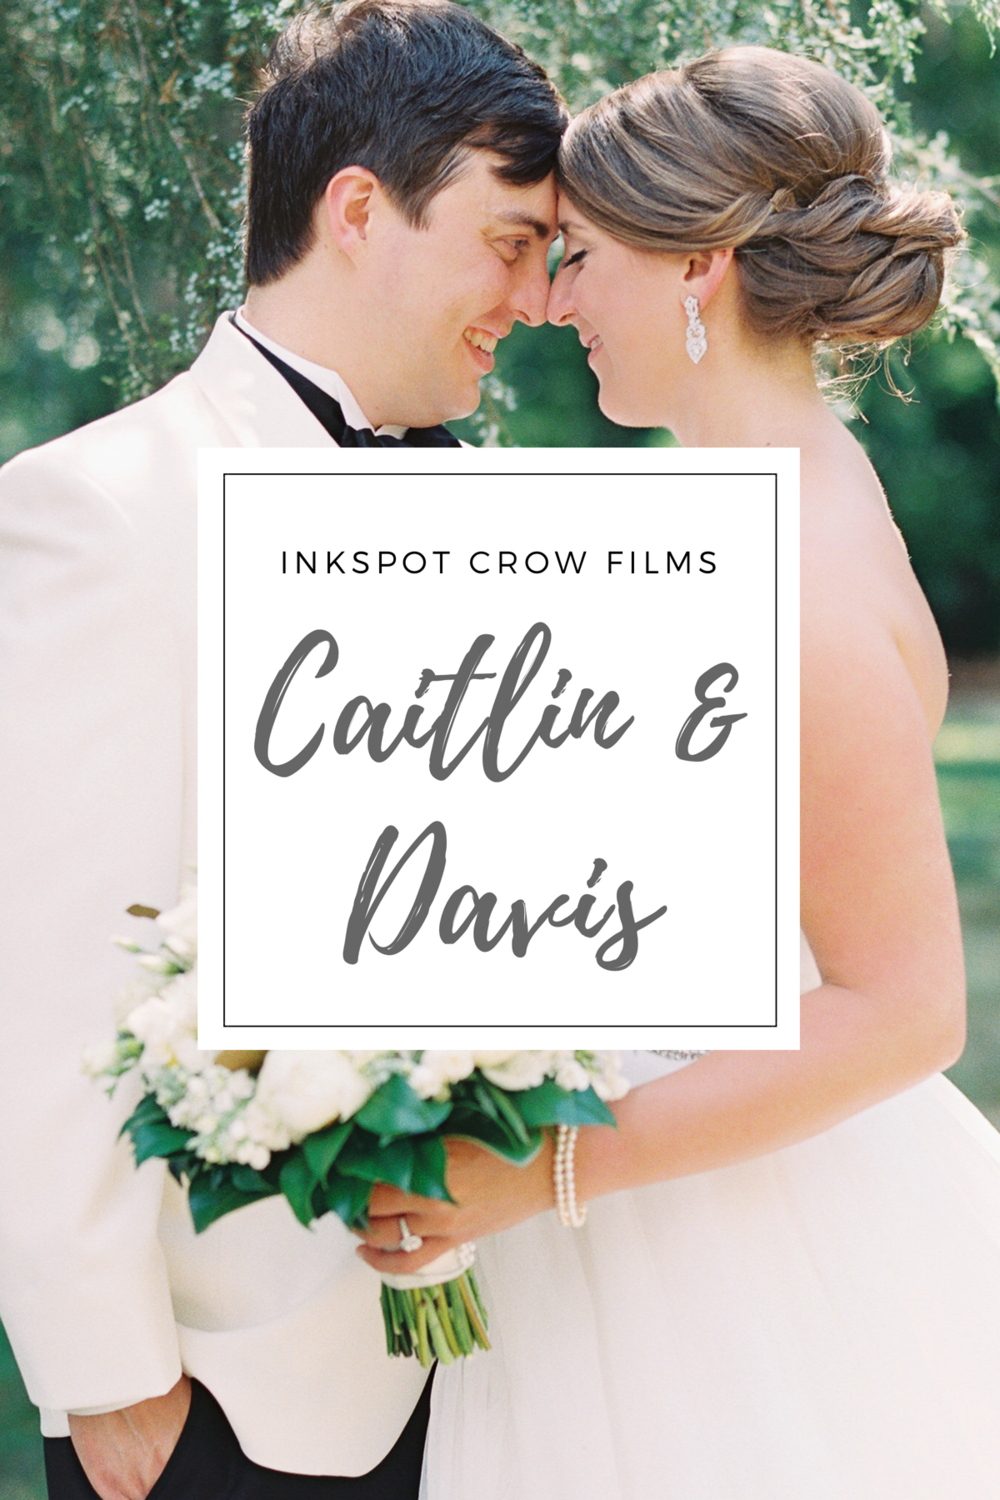 Click on this image to view Caitlin and Davis' beautiful wedding film by Inkspot Crow Films